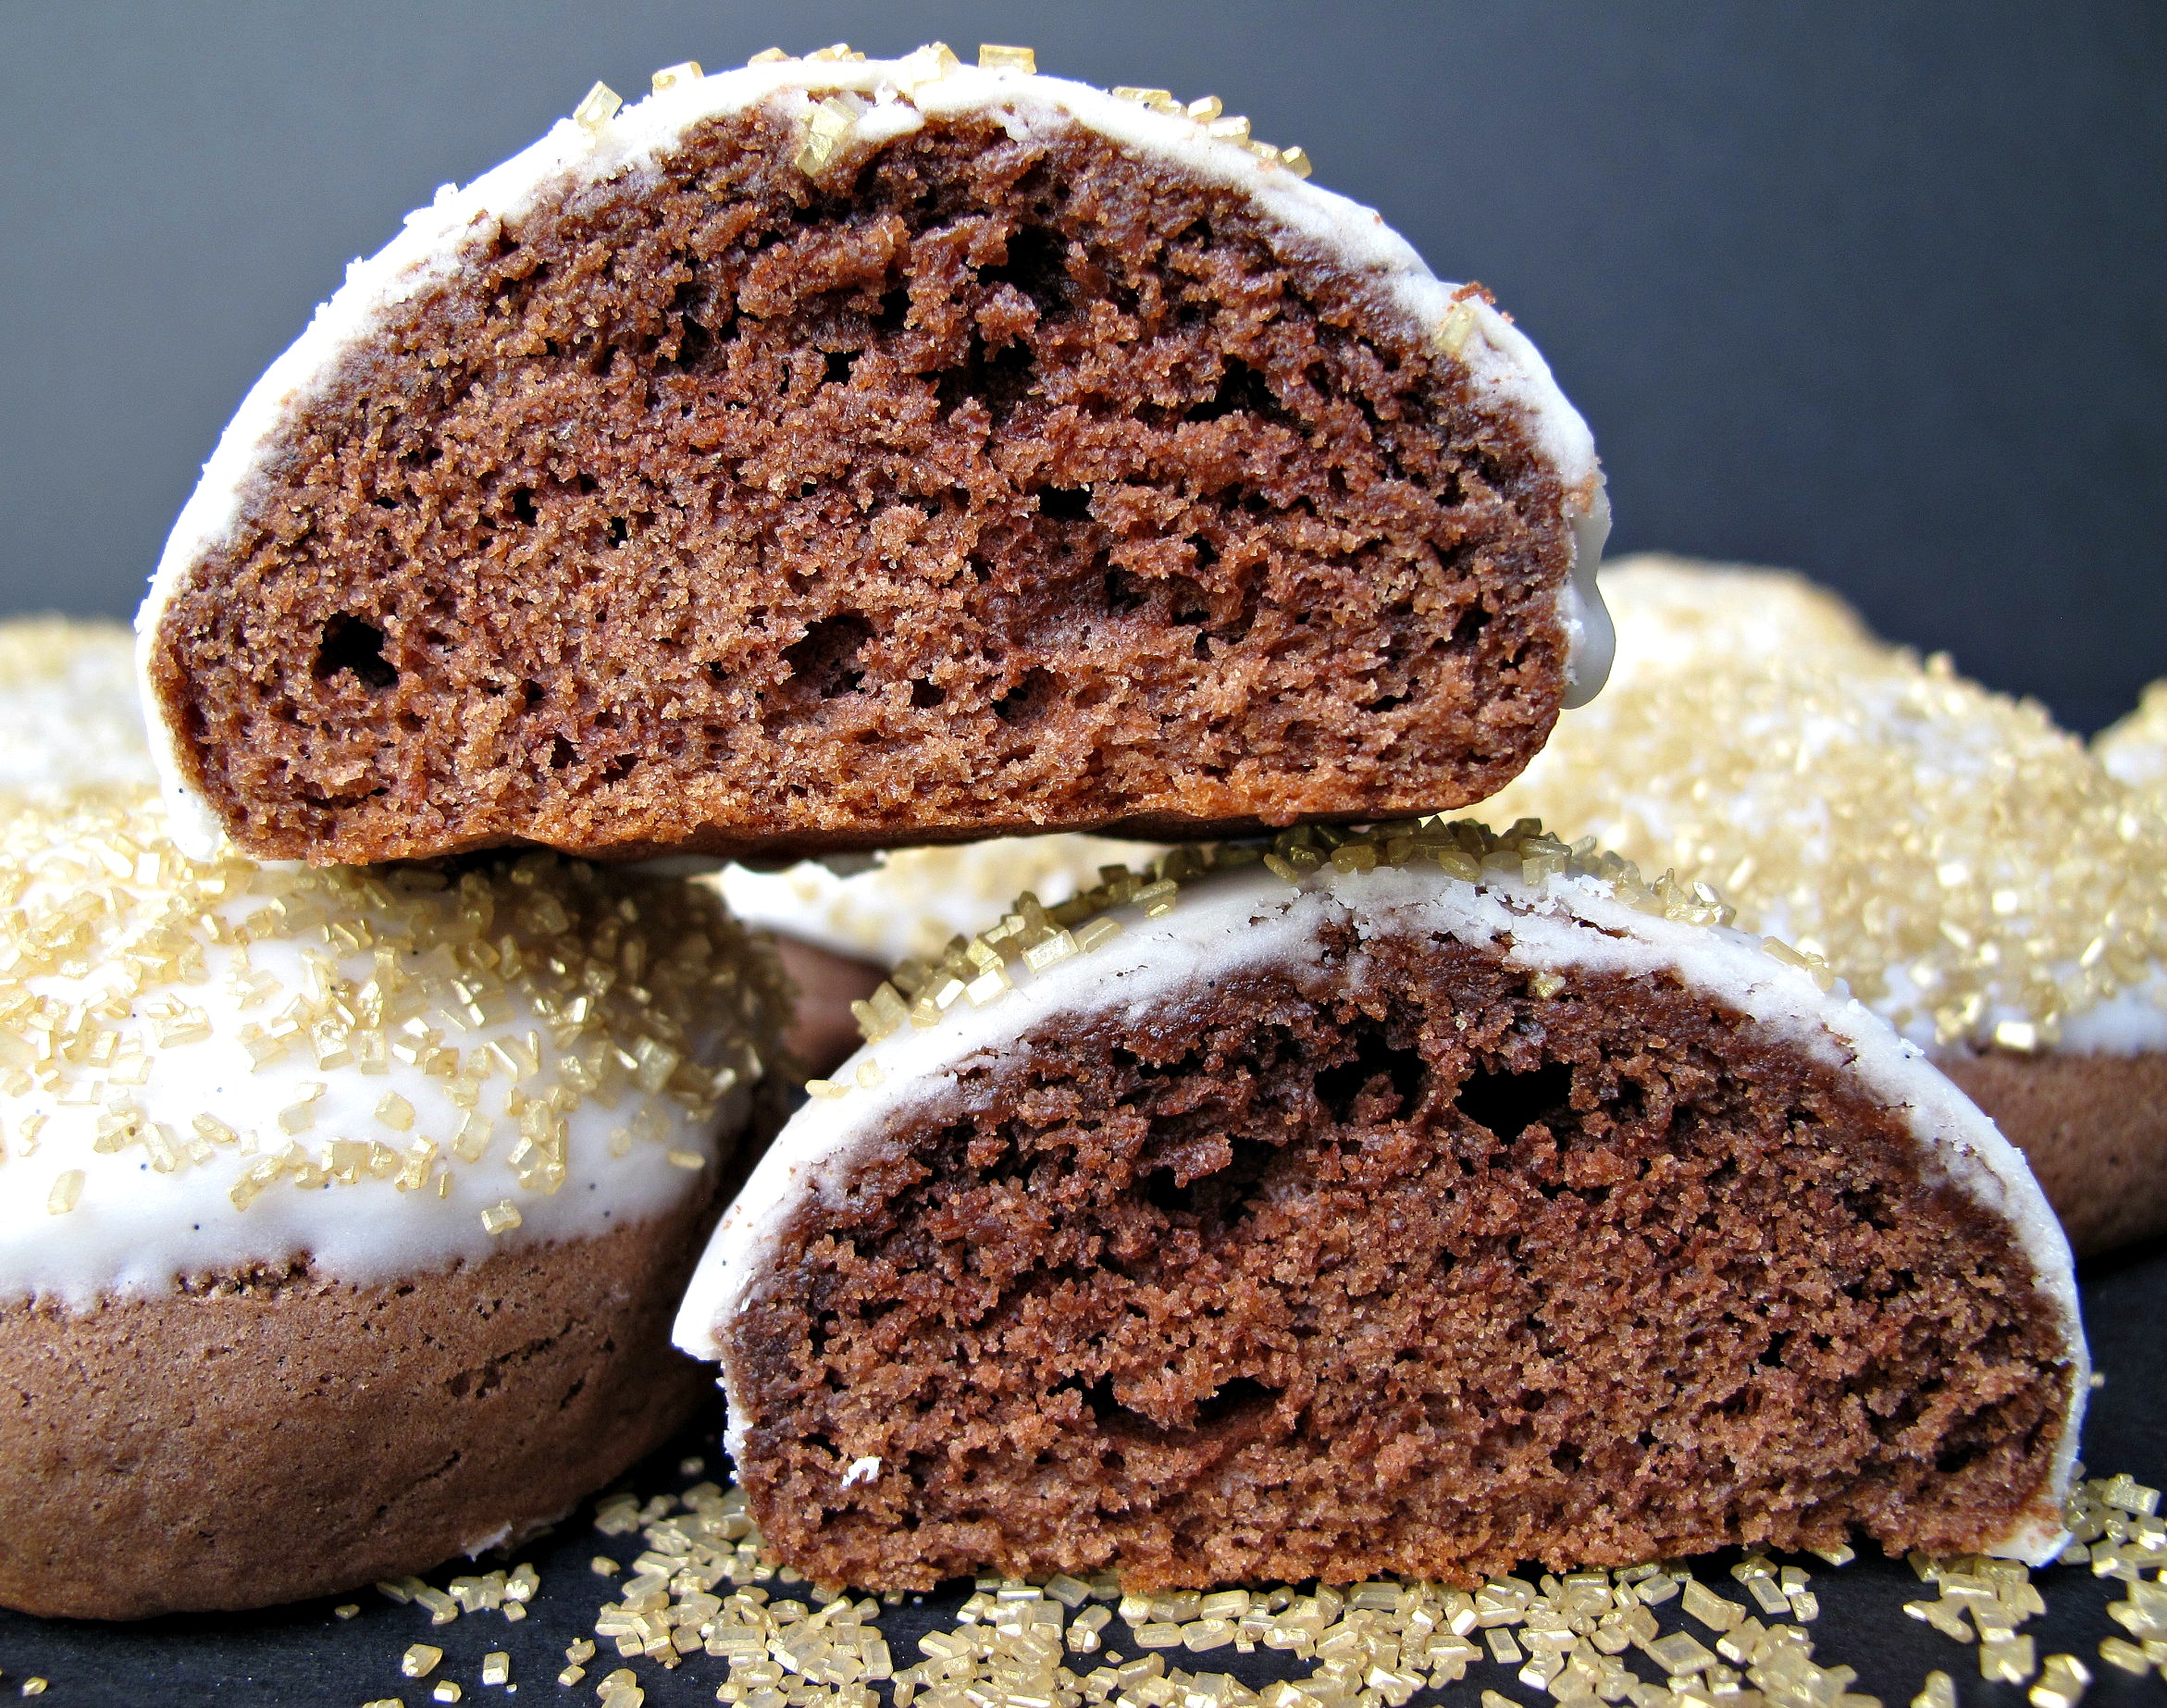 What S A Good Cake Recipe With Chocolate Chips